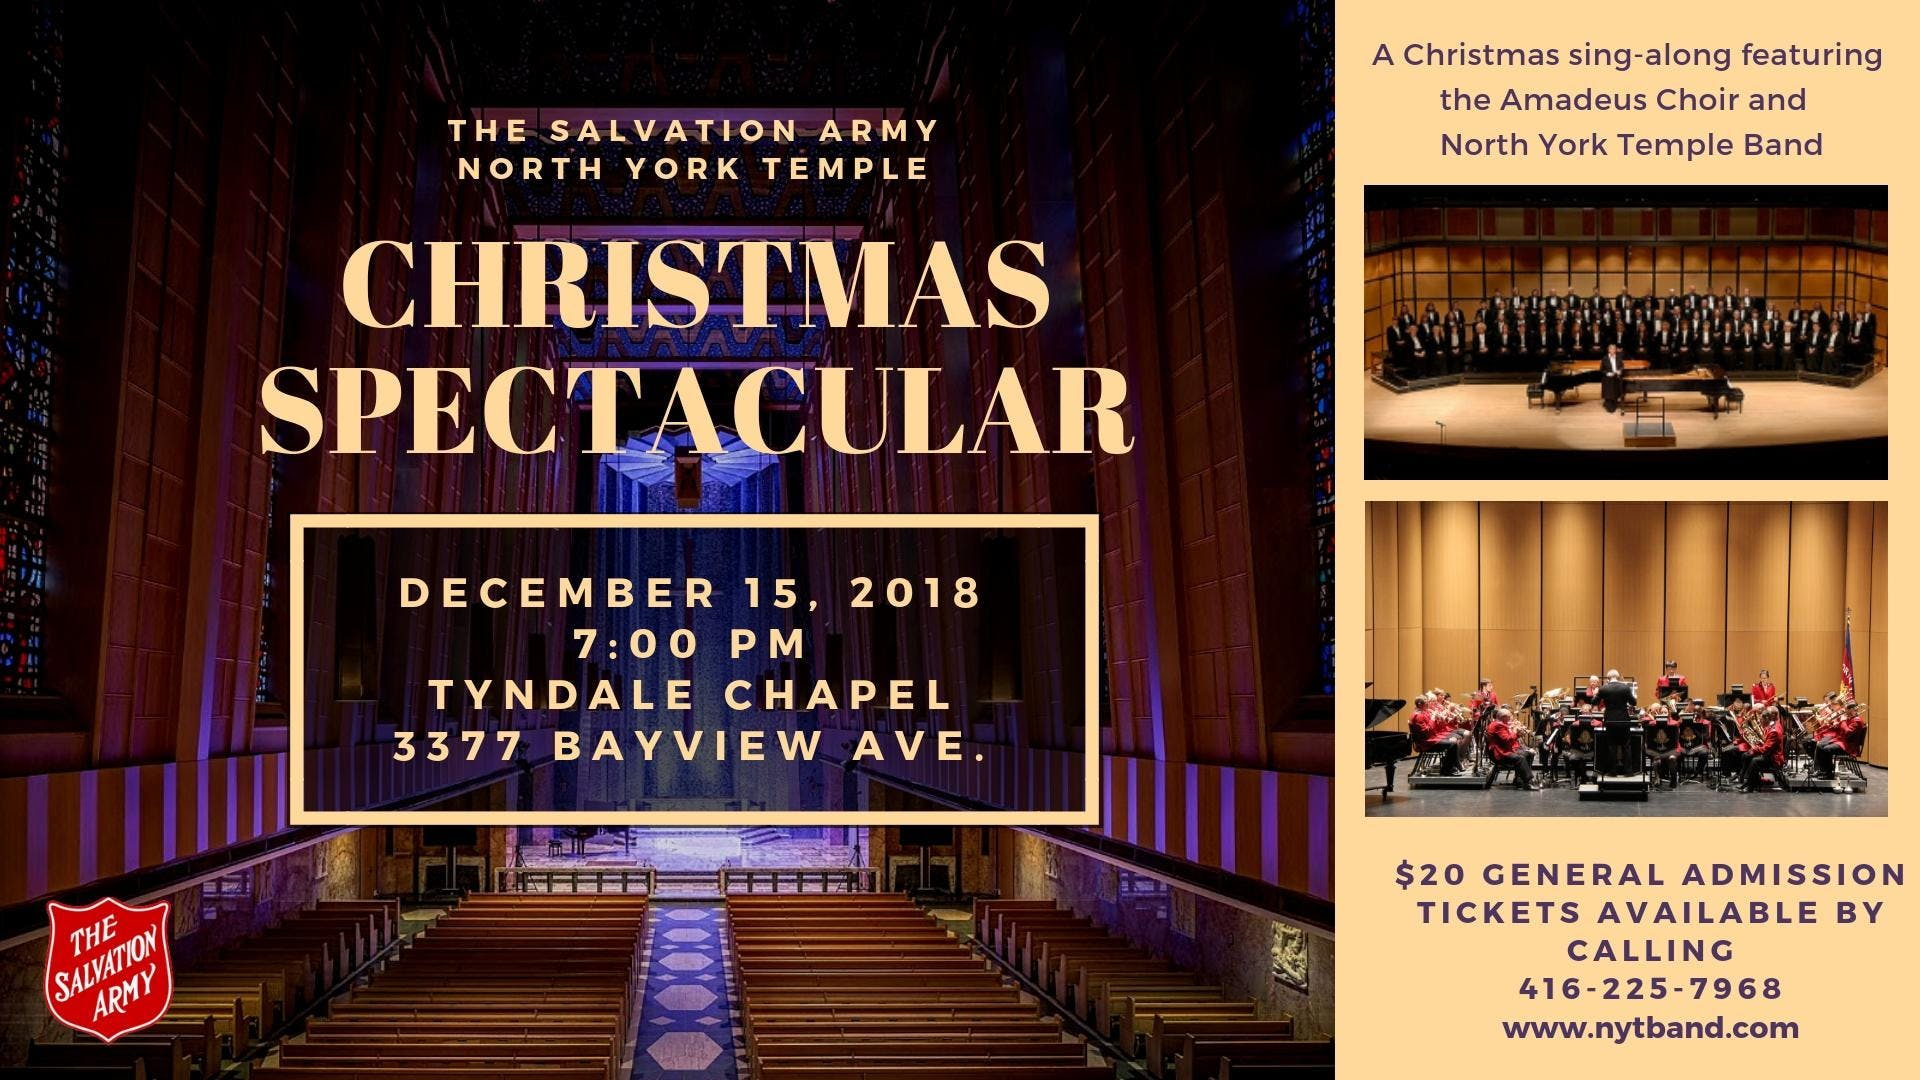 Christmas Spectacular - 15 DEC 2018